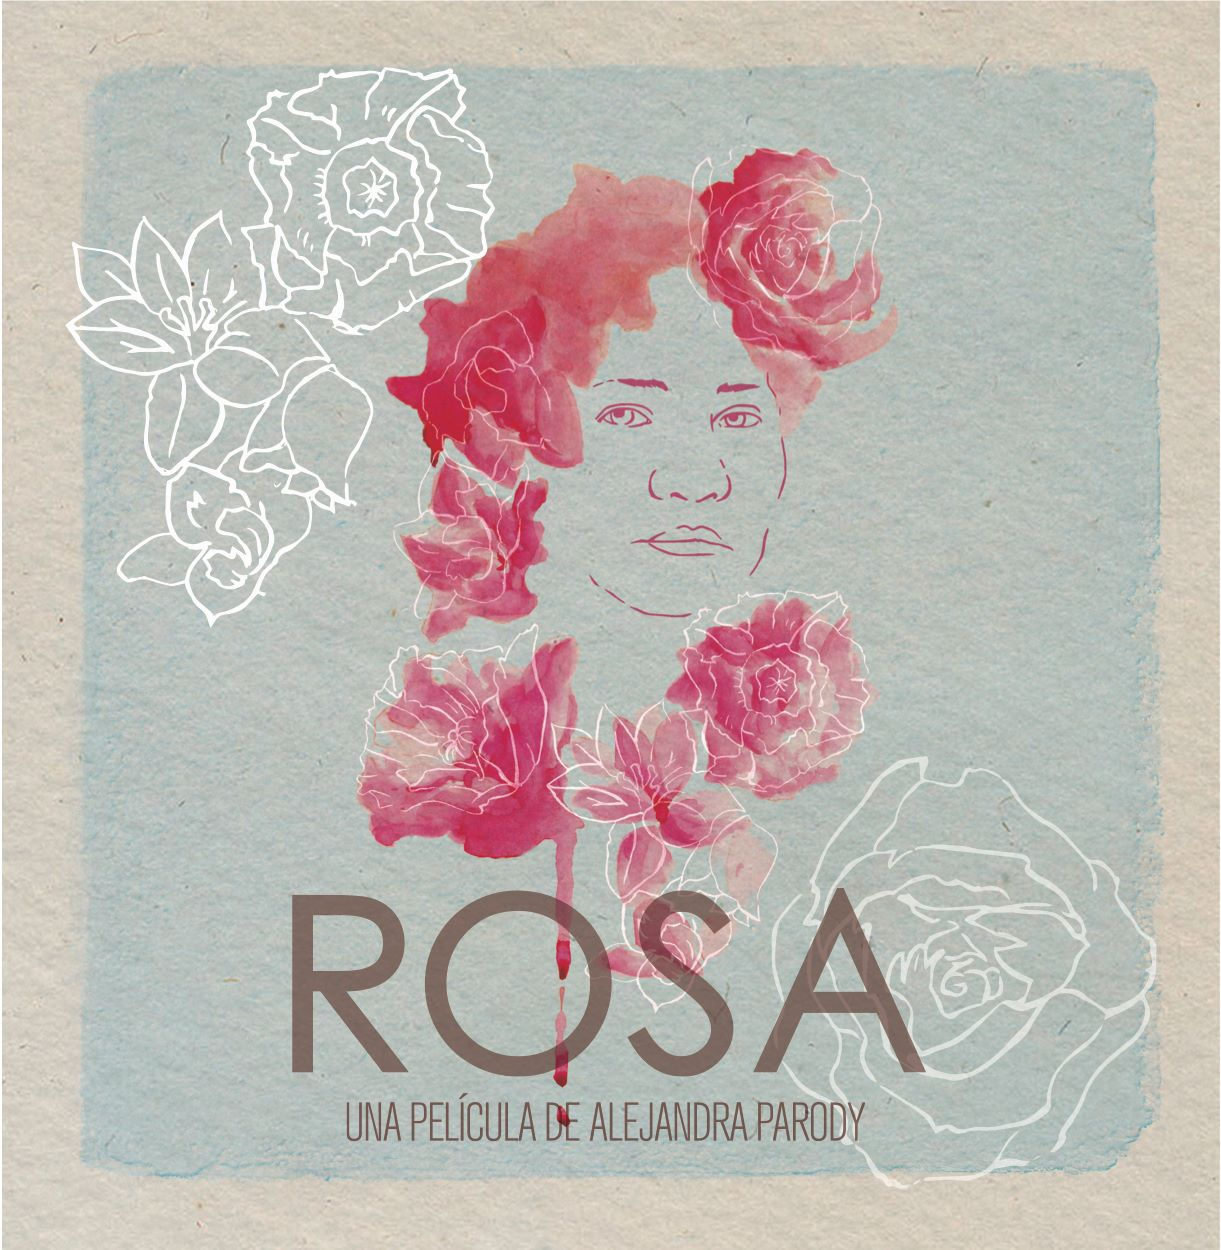 Rosa - ROSA is a short film that explores deeply engraved class divisions in Colombian society, and the relationship between a family maid and child.